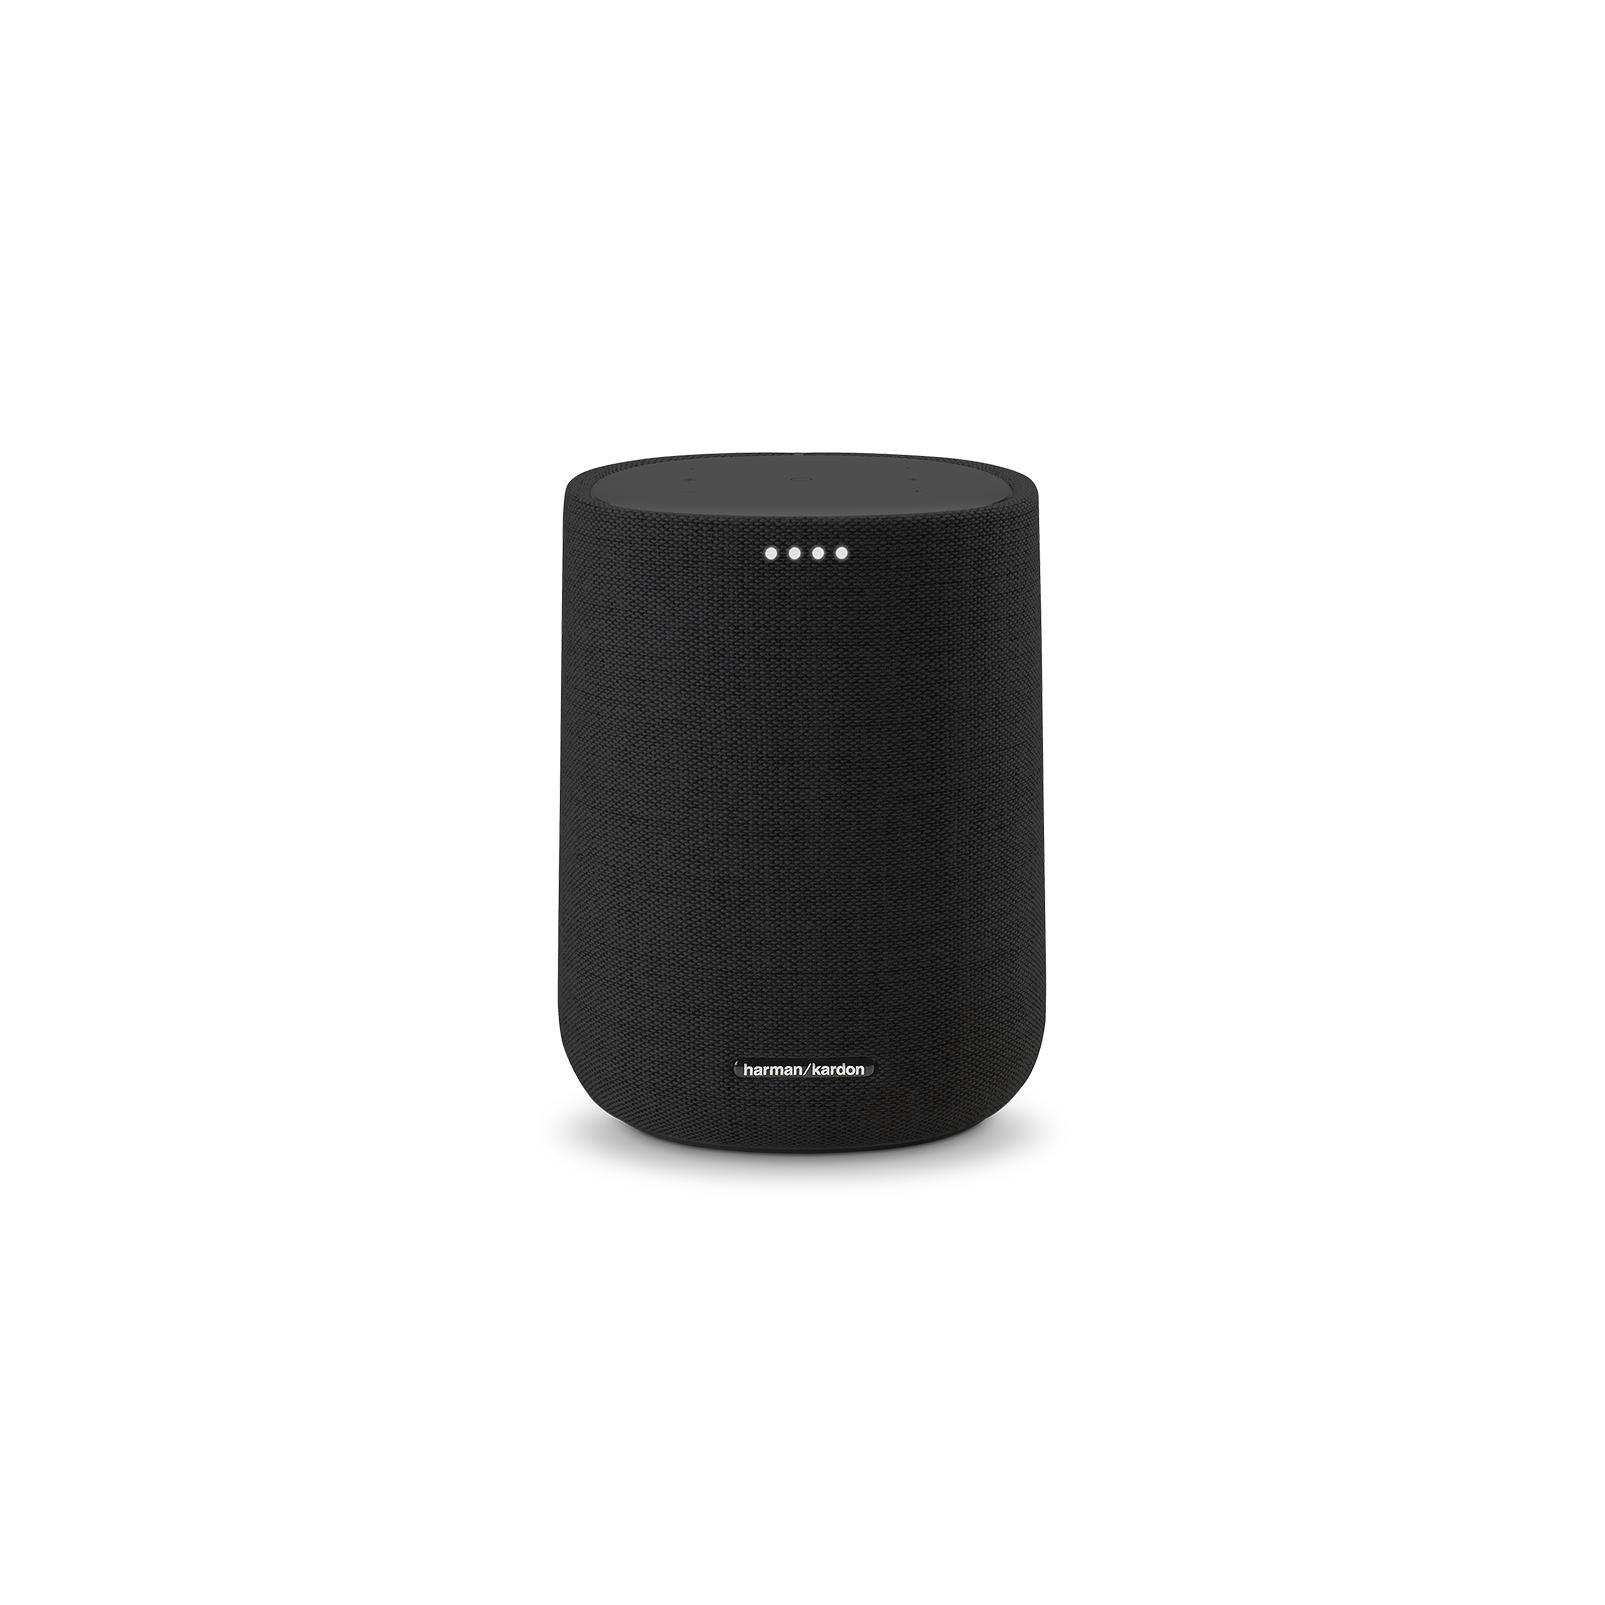 Harman Kardon Citation One MKII - Black - All-in-one smart speaker with room-filling sound - Front